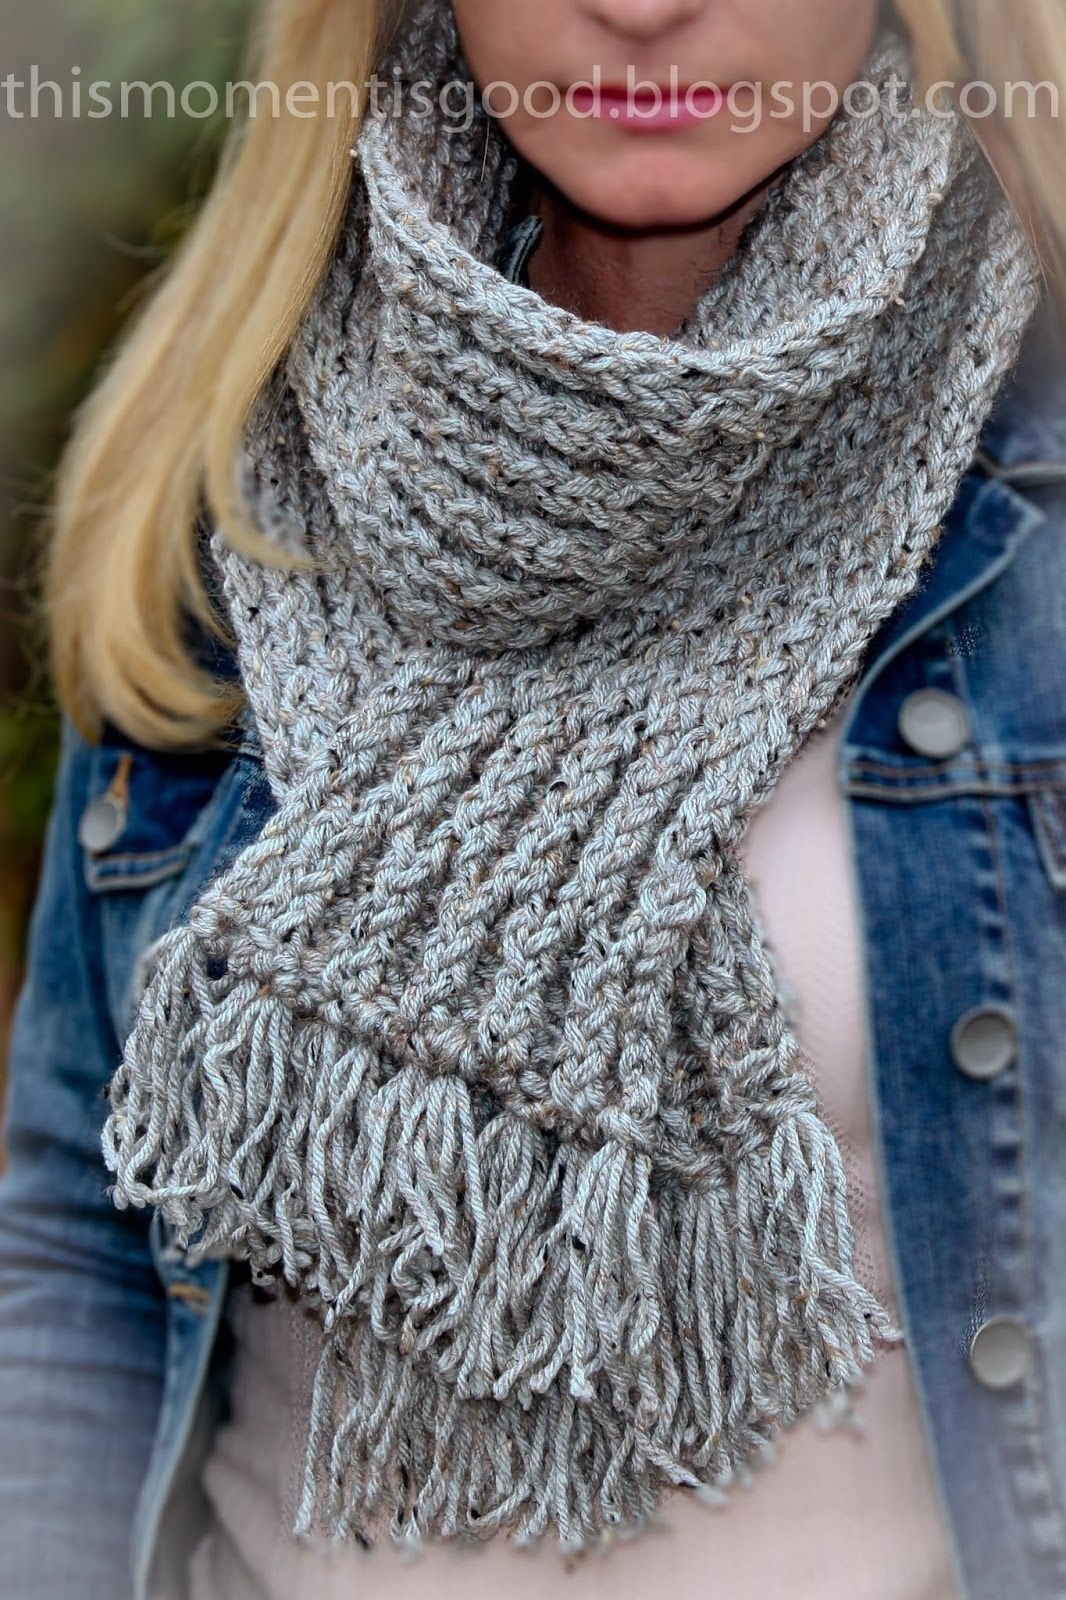 Round Loom Knitting Scarf Patterns For Beginners : Warm & Cozy Loom Knit Scarf... If youve read my earlier posts, you k...